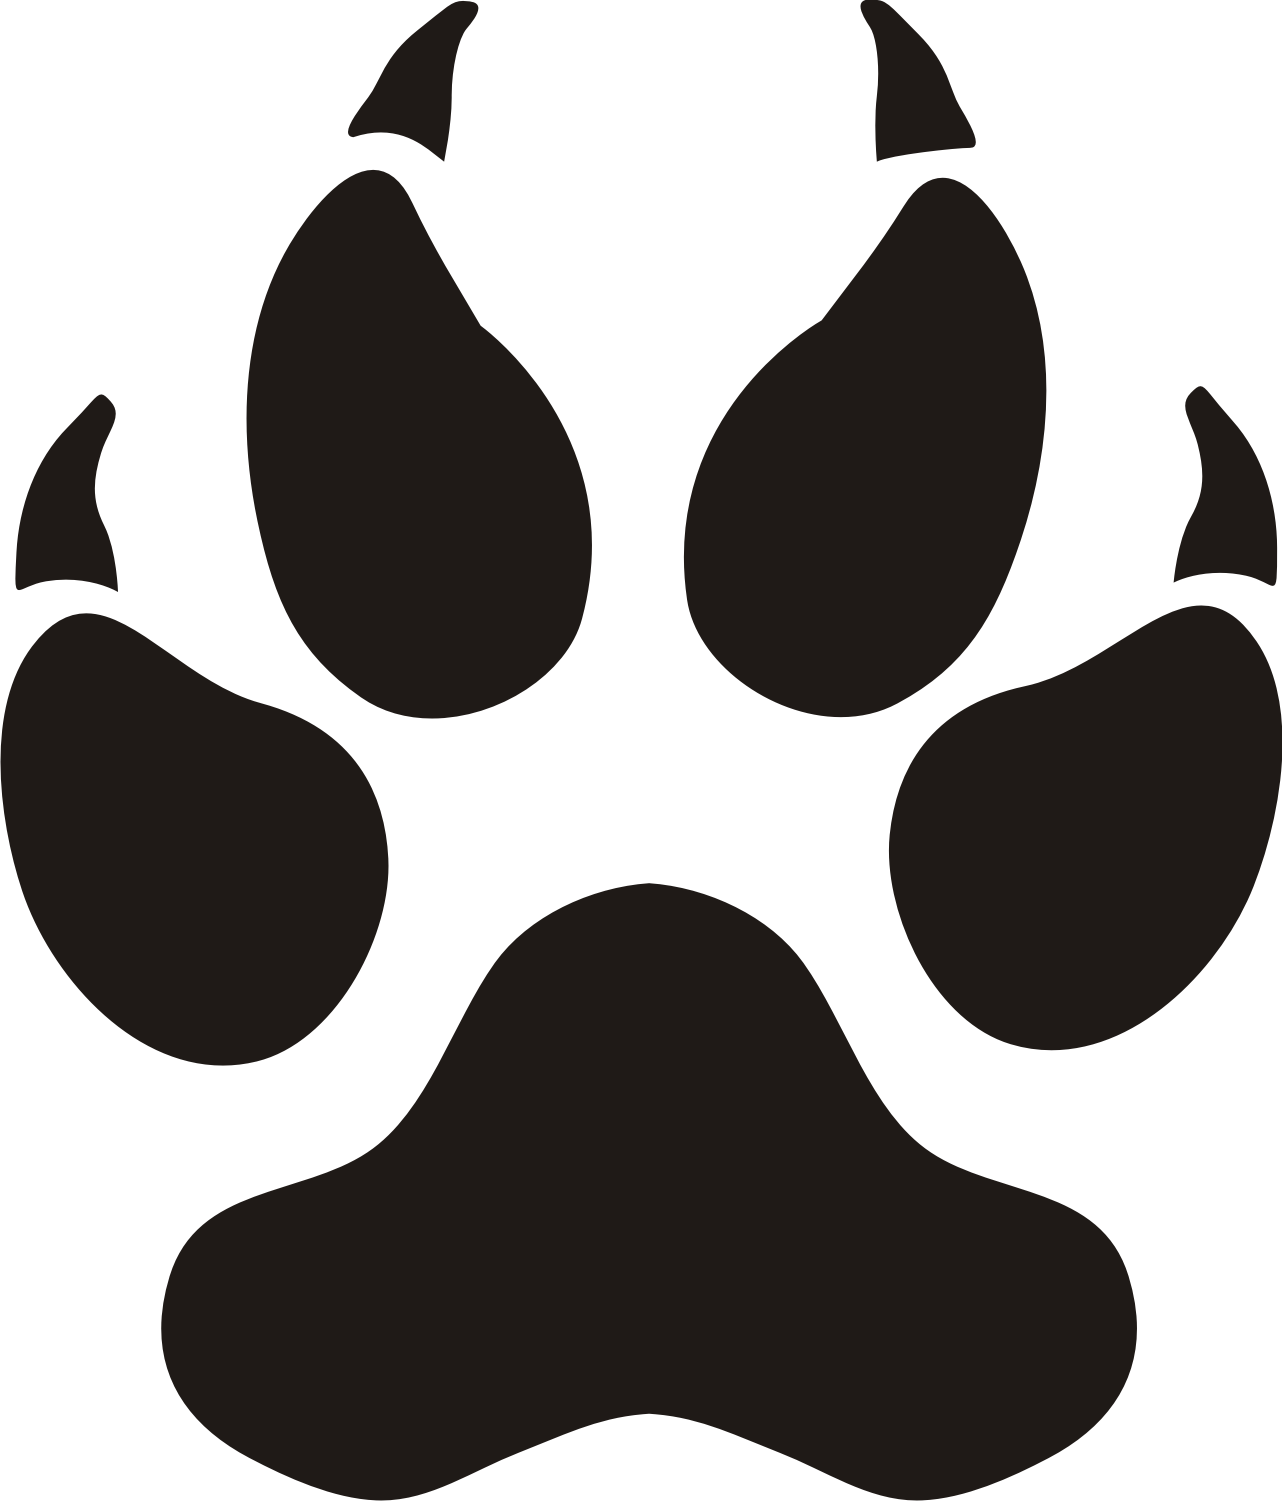 Small Panther Paw Print Images   Clipart Best